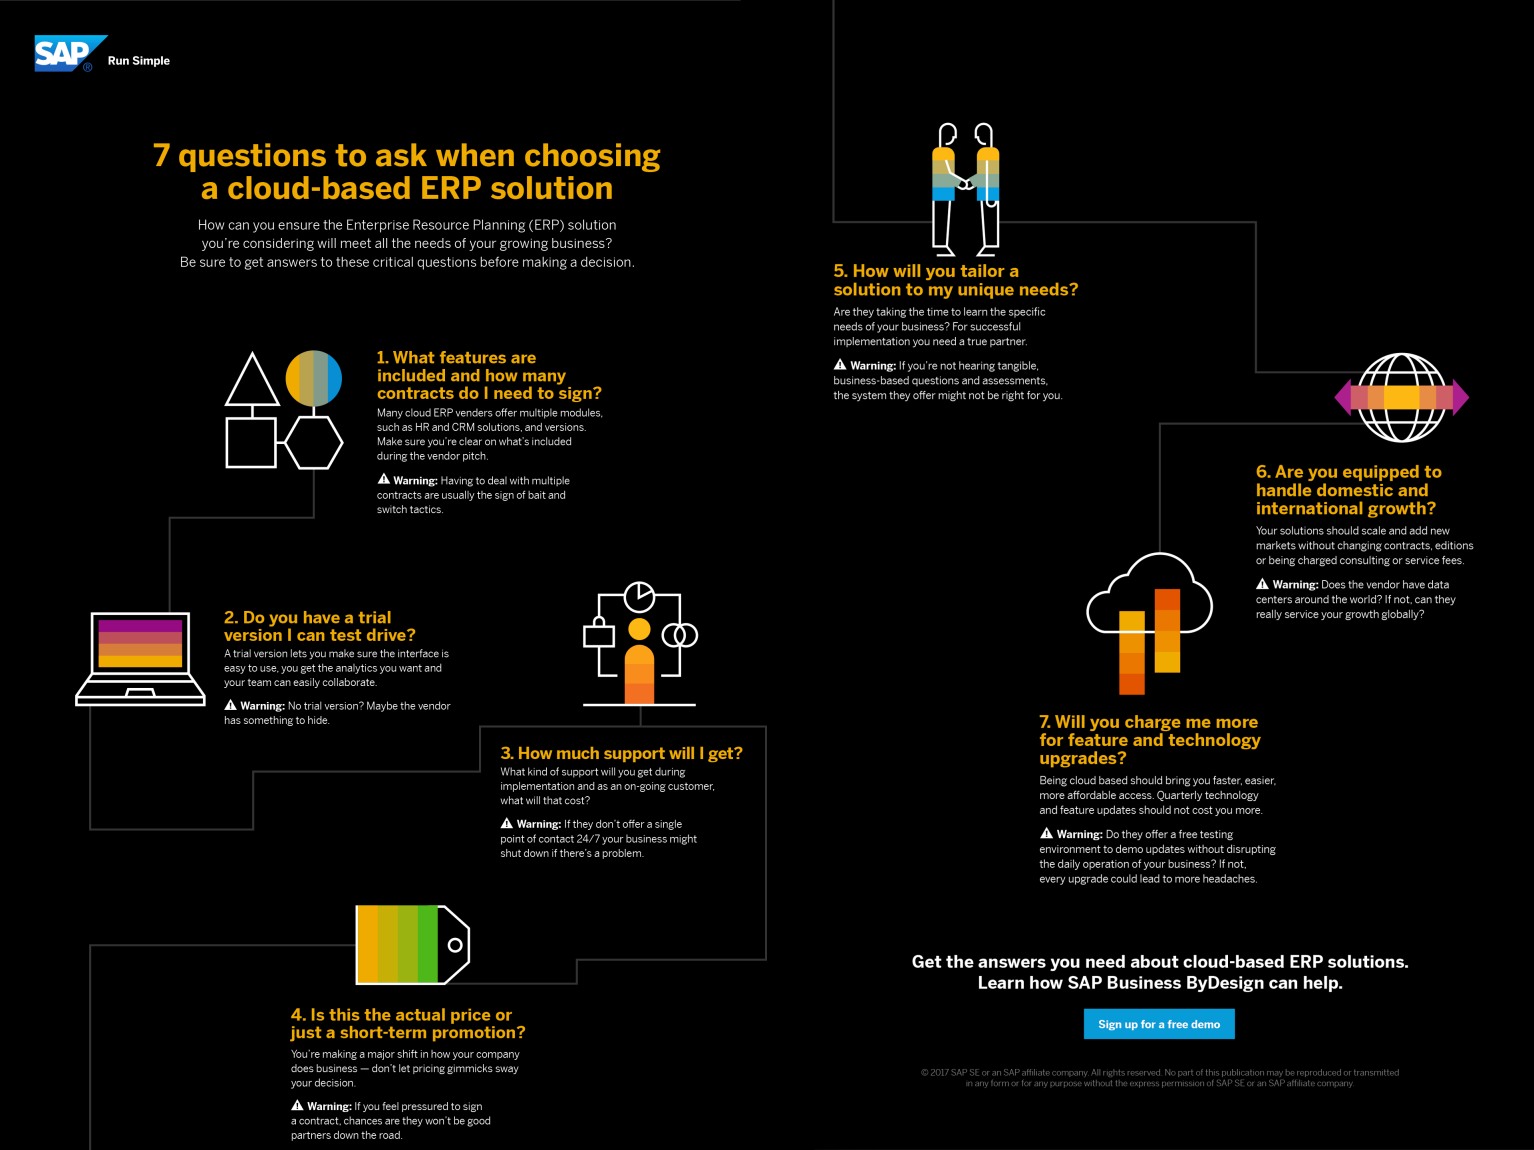 Small Business Management Software Sap The Leds You Purchase Online Will Usually Have Several Important Screenshot Of An Infographic With Tips For Navigating Complex Cloud Erp Selection Decisions